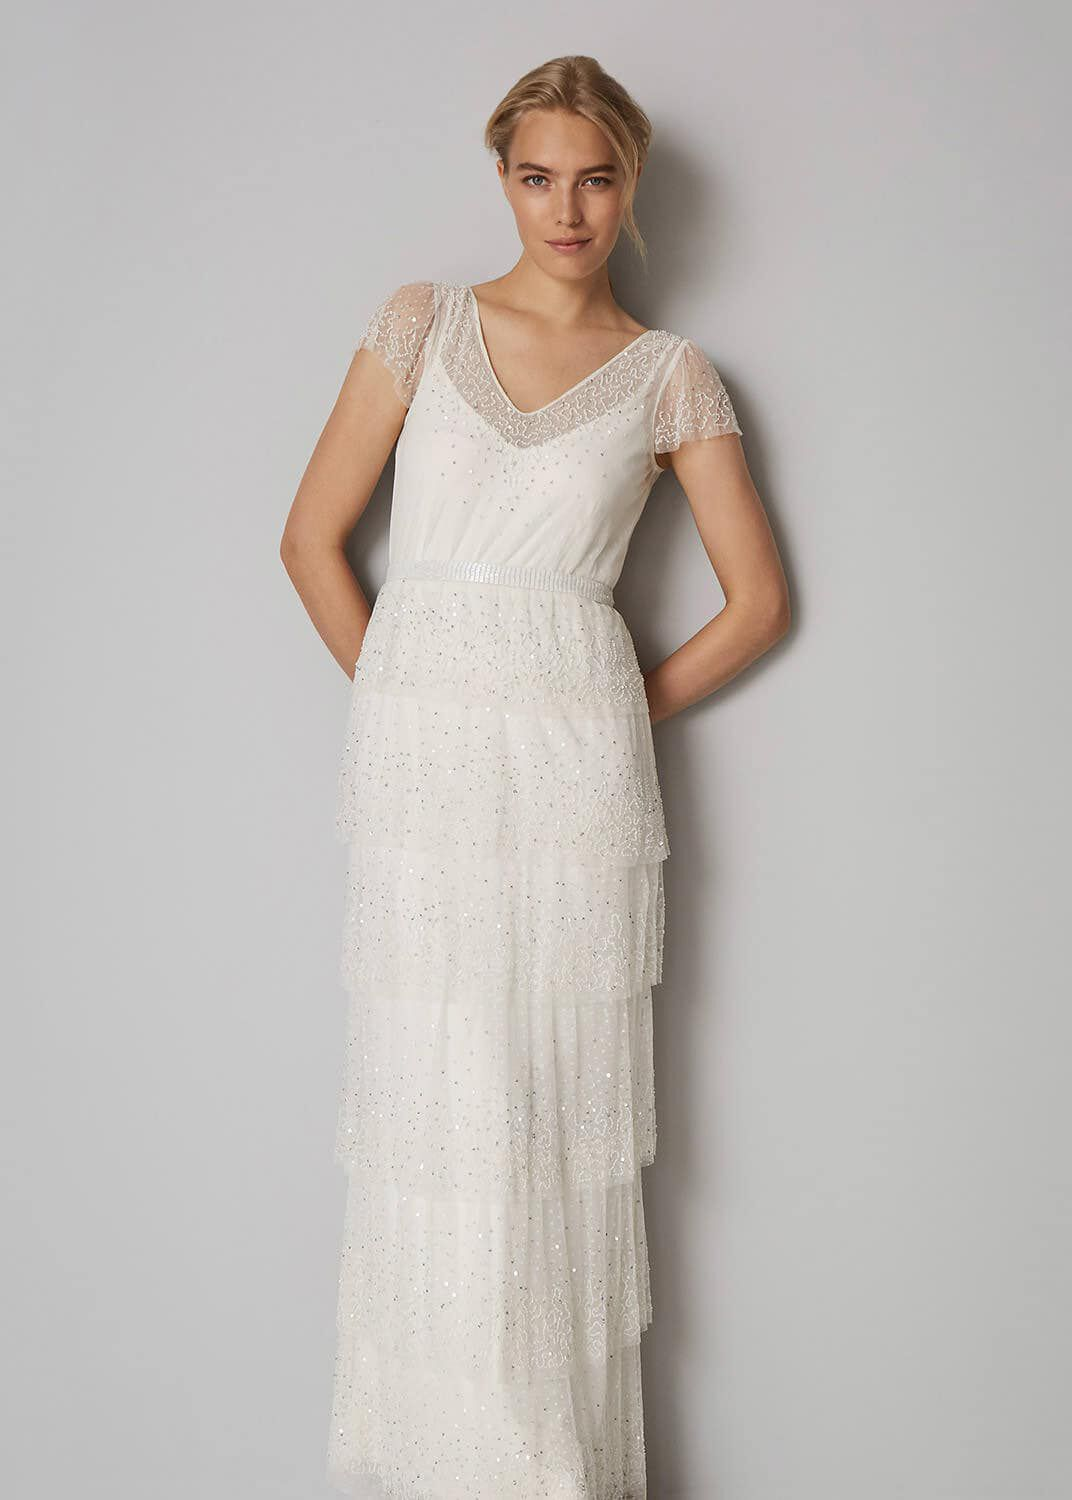 Vintage Style Wedding Dresses, Vintage Inspired Wedding Gowns Phase Eight Nyelle Layered Wedding Dress Cream Maxi £195.00 AT vintagedancer.com